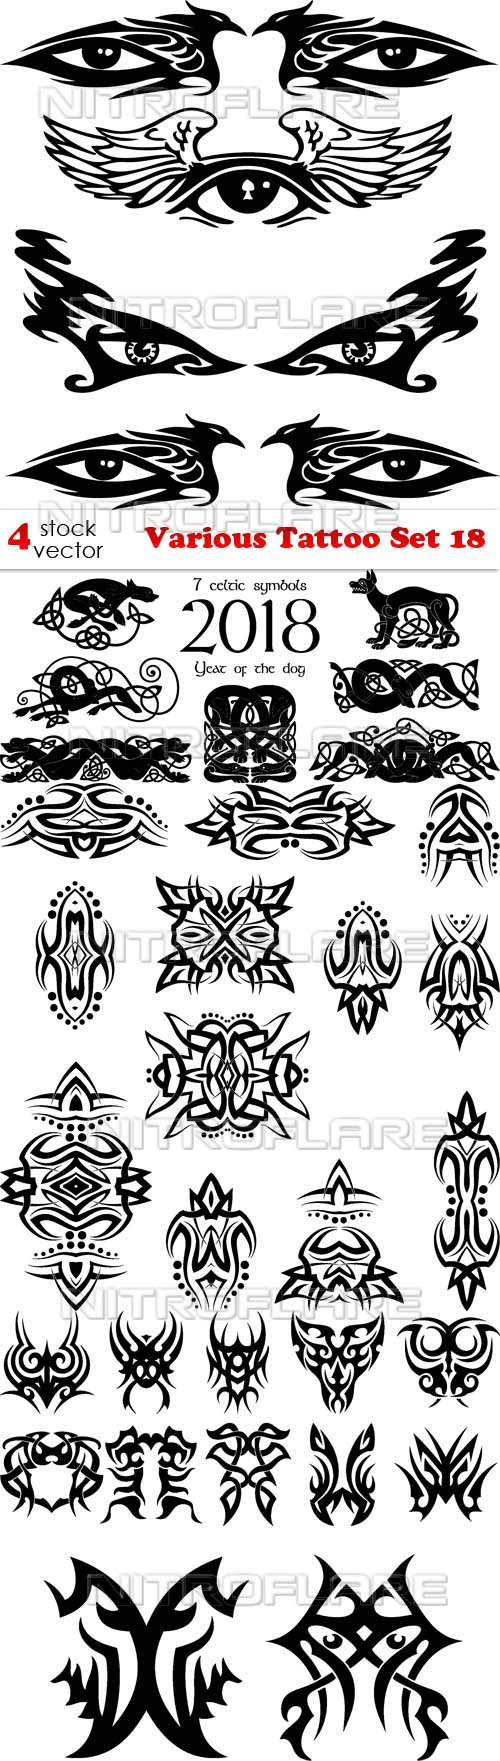 Vectors - Various Tattoo Set 18